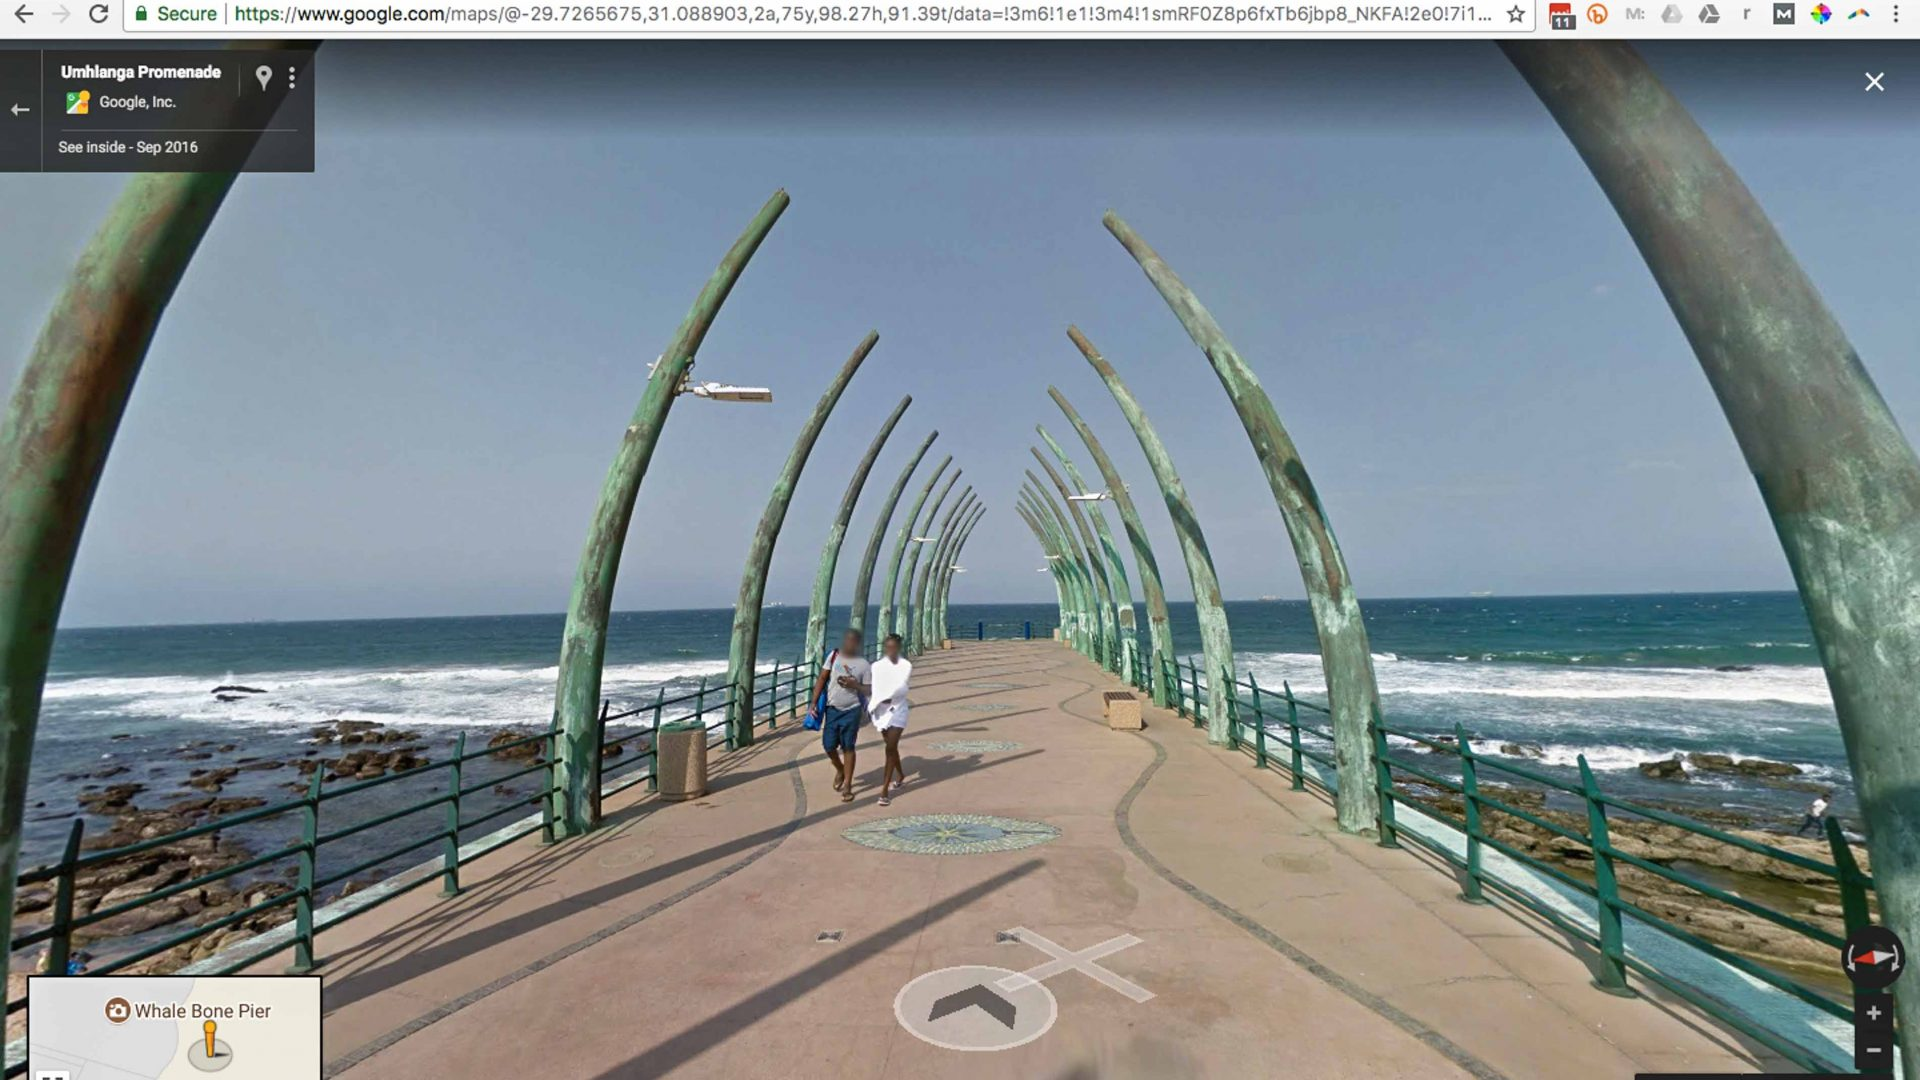 Google Street View screenshot of the Umhlanga Pier in South Africa's KwaZulu-Natal province. The image was captured in September 2016 by volunteers wearing the Google Trekker camera.